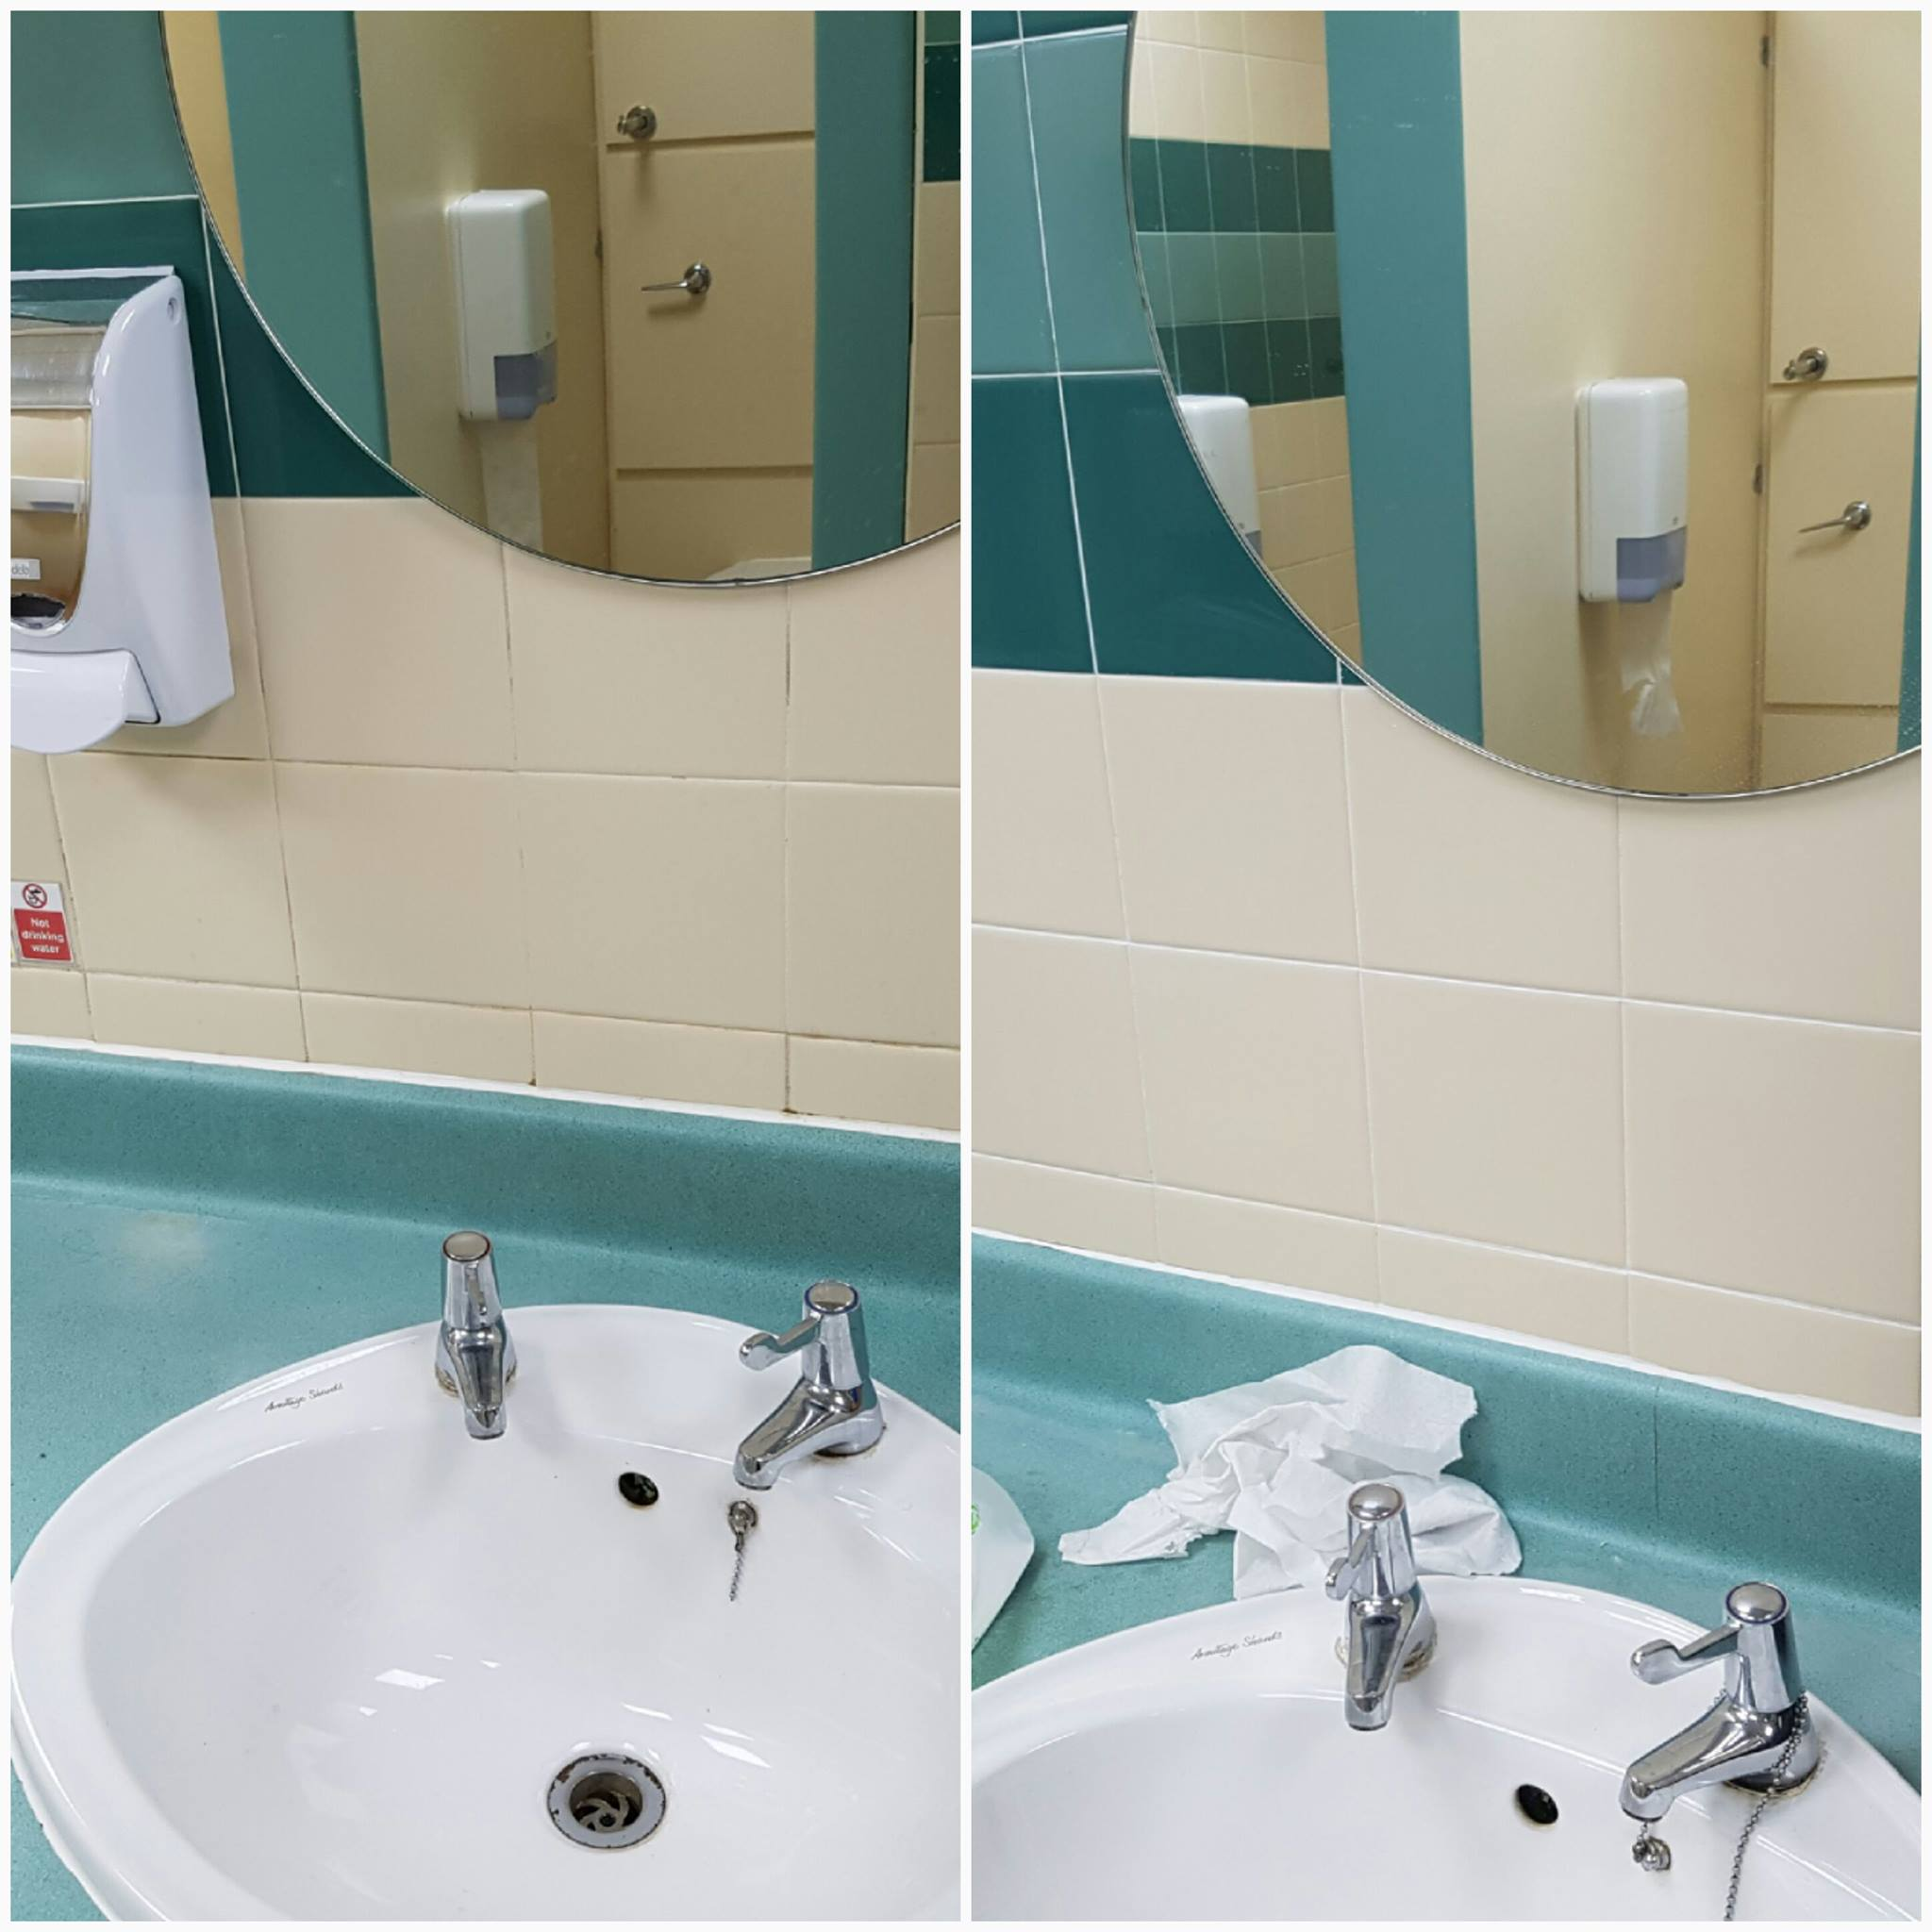 Bathroom Wall Grout Refresh at Corporate Offices Before and After Cleaning